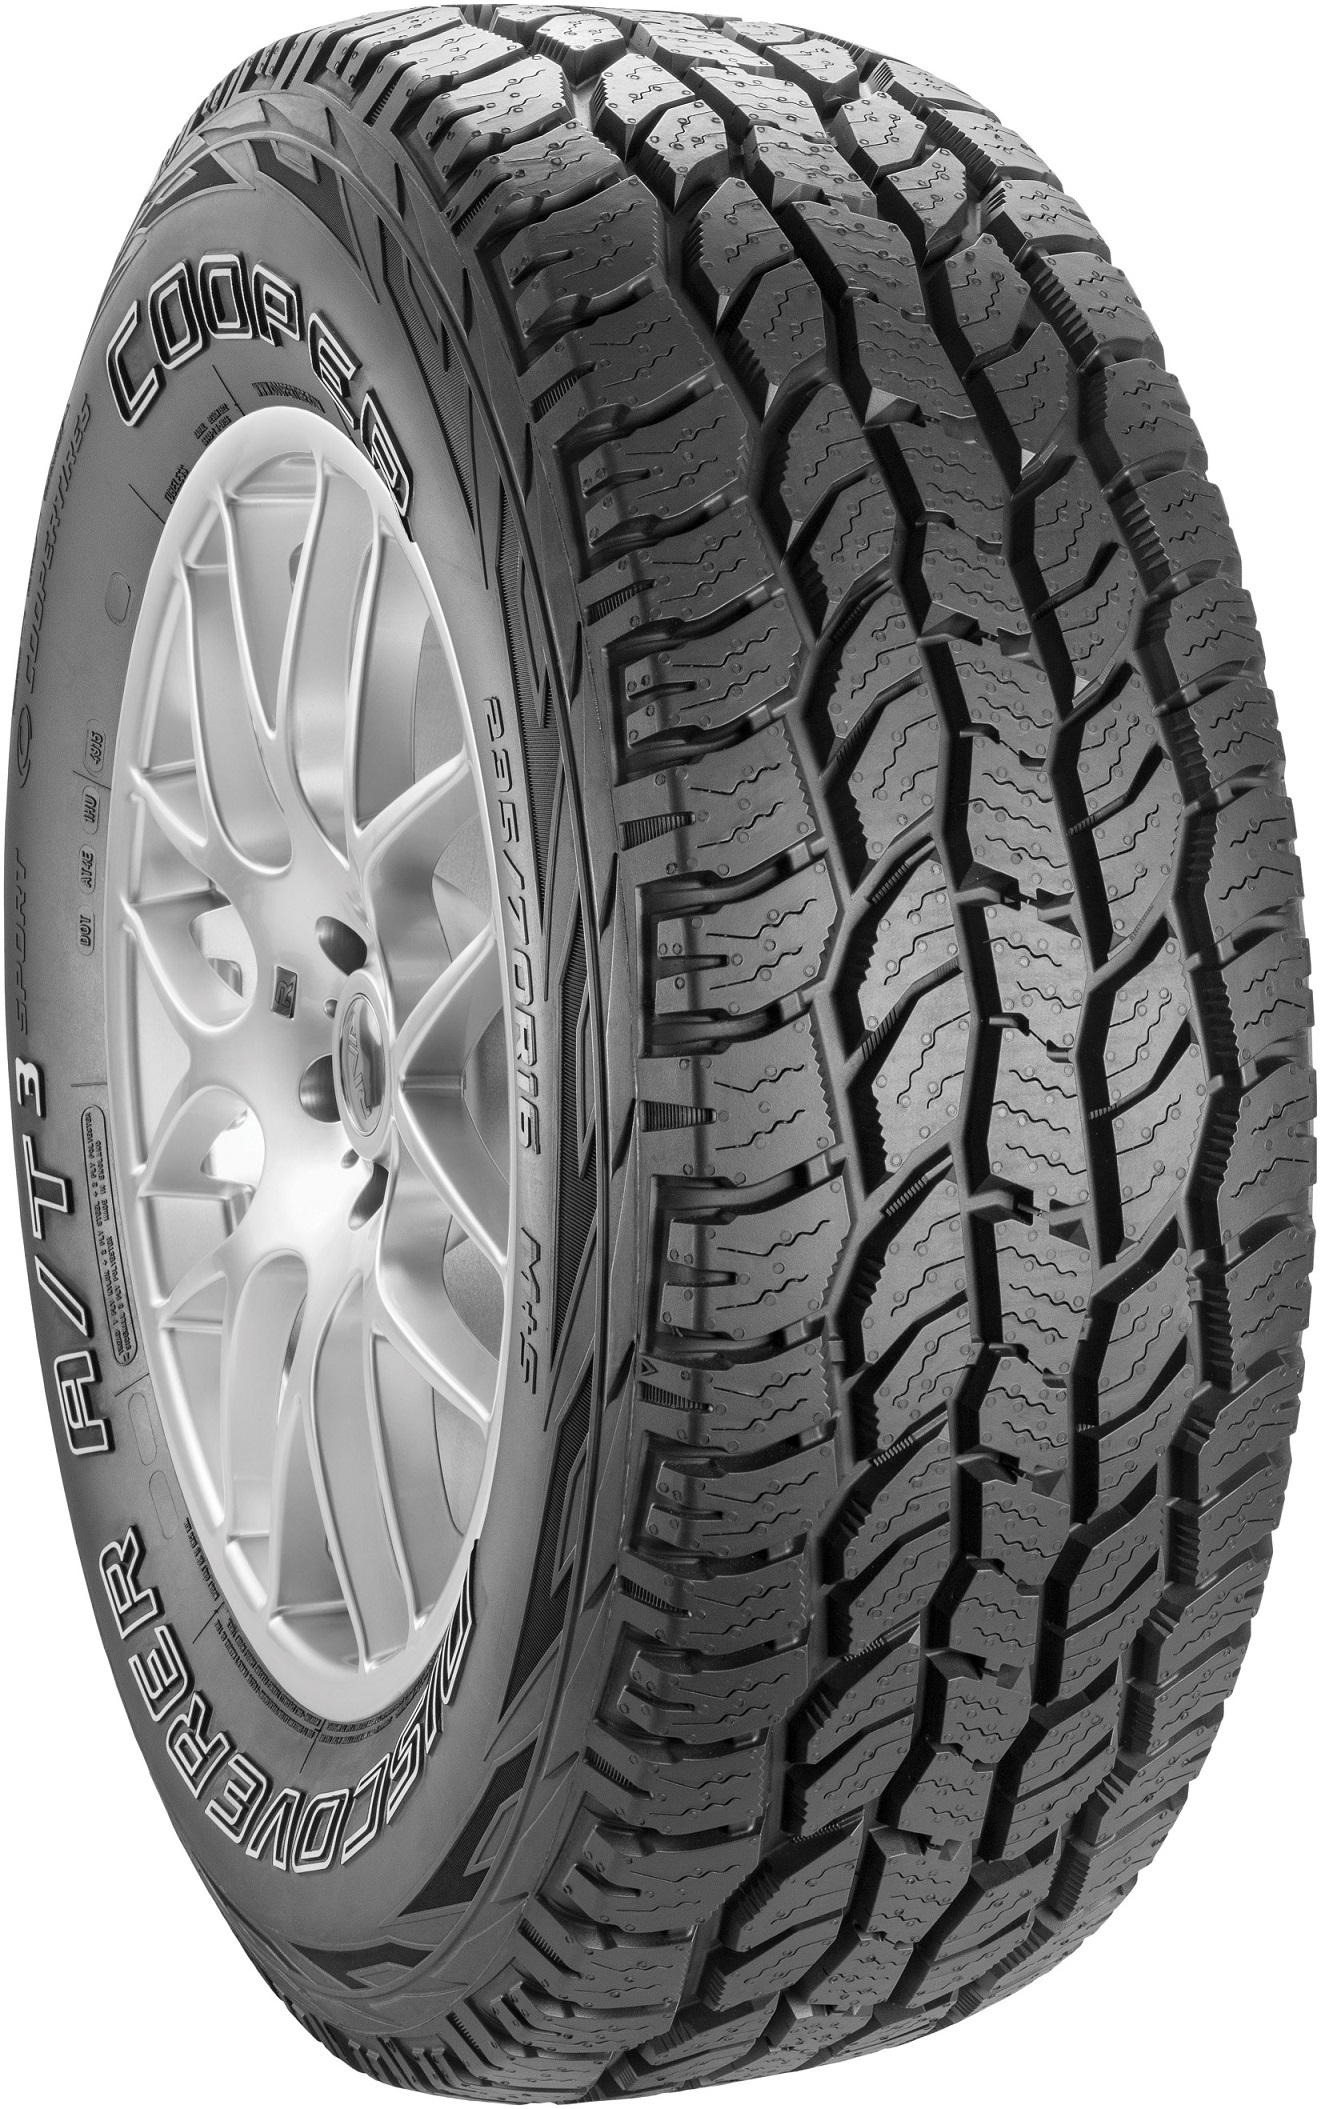 Cooper DISCOVERER A/T3 SPORT 235/70 R16 DISCOVE RE R A/T3 SPO RT 106T OWL